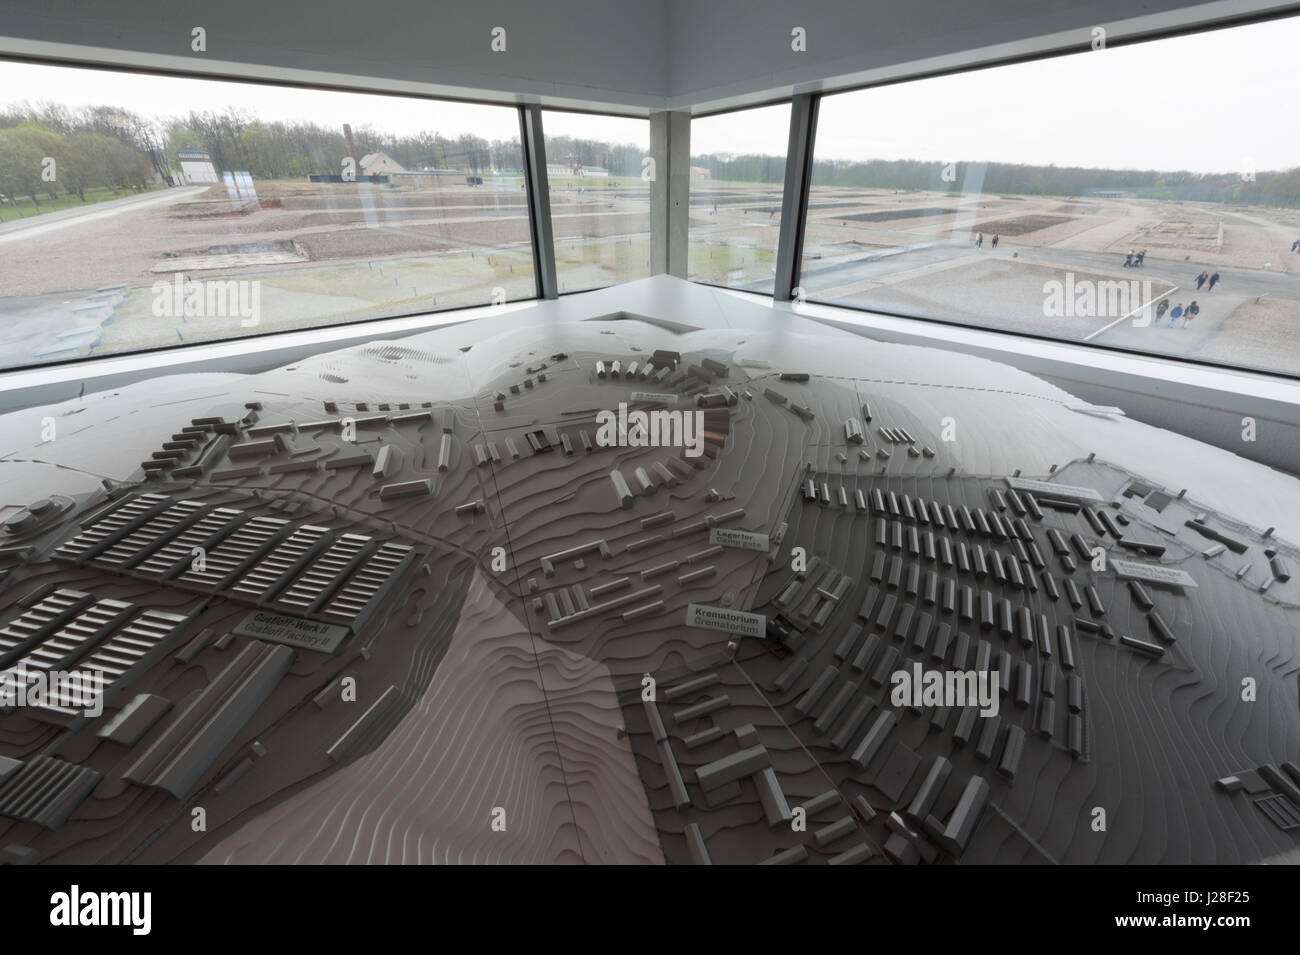 A scale model of Buchenwald concentration camp overlooking the camp area. - Stock Image